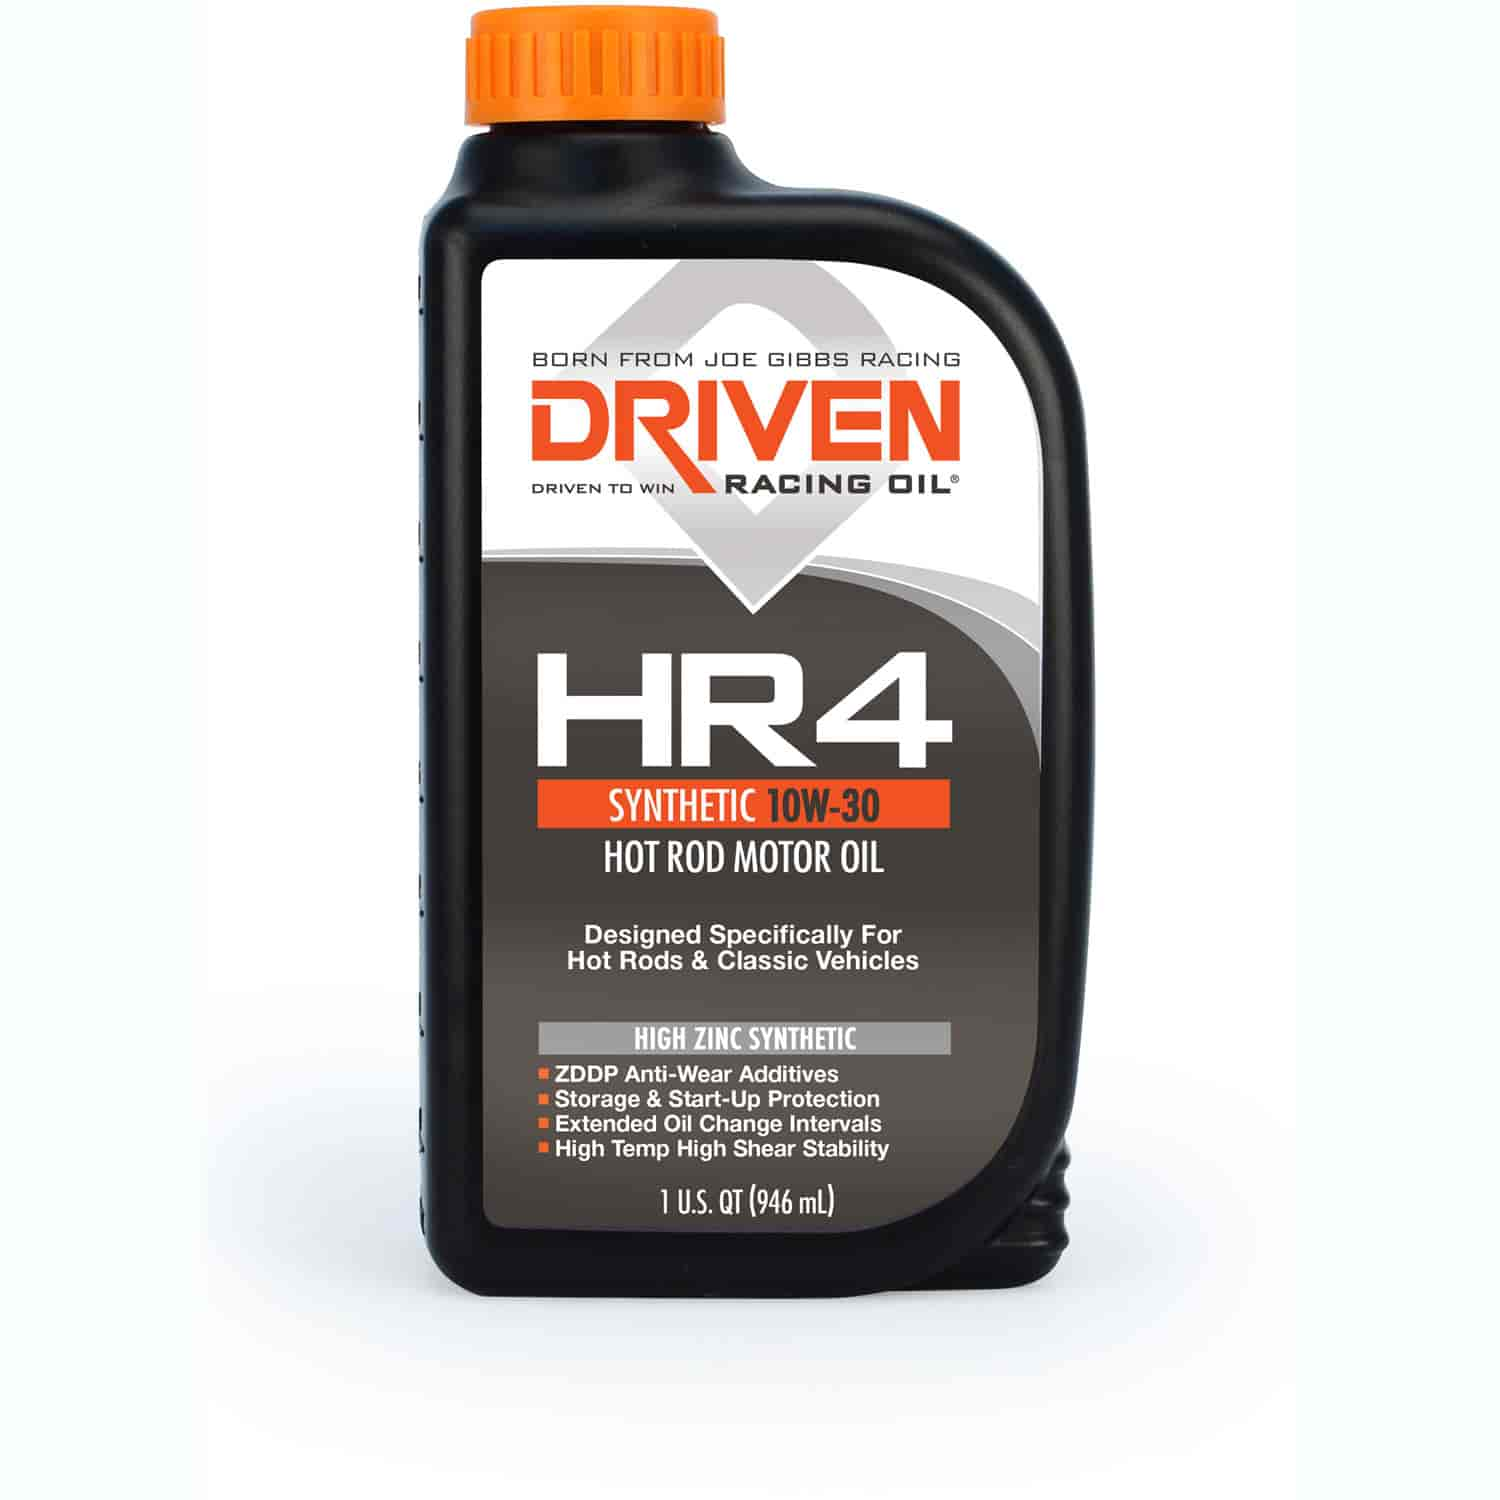 Driven Racing Oil 01506 Hr4 10w 30 Synthetic Hot Rod 1 Quart Jegs Typical Wiring Schematic For Street